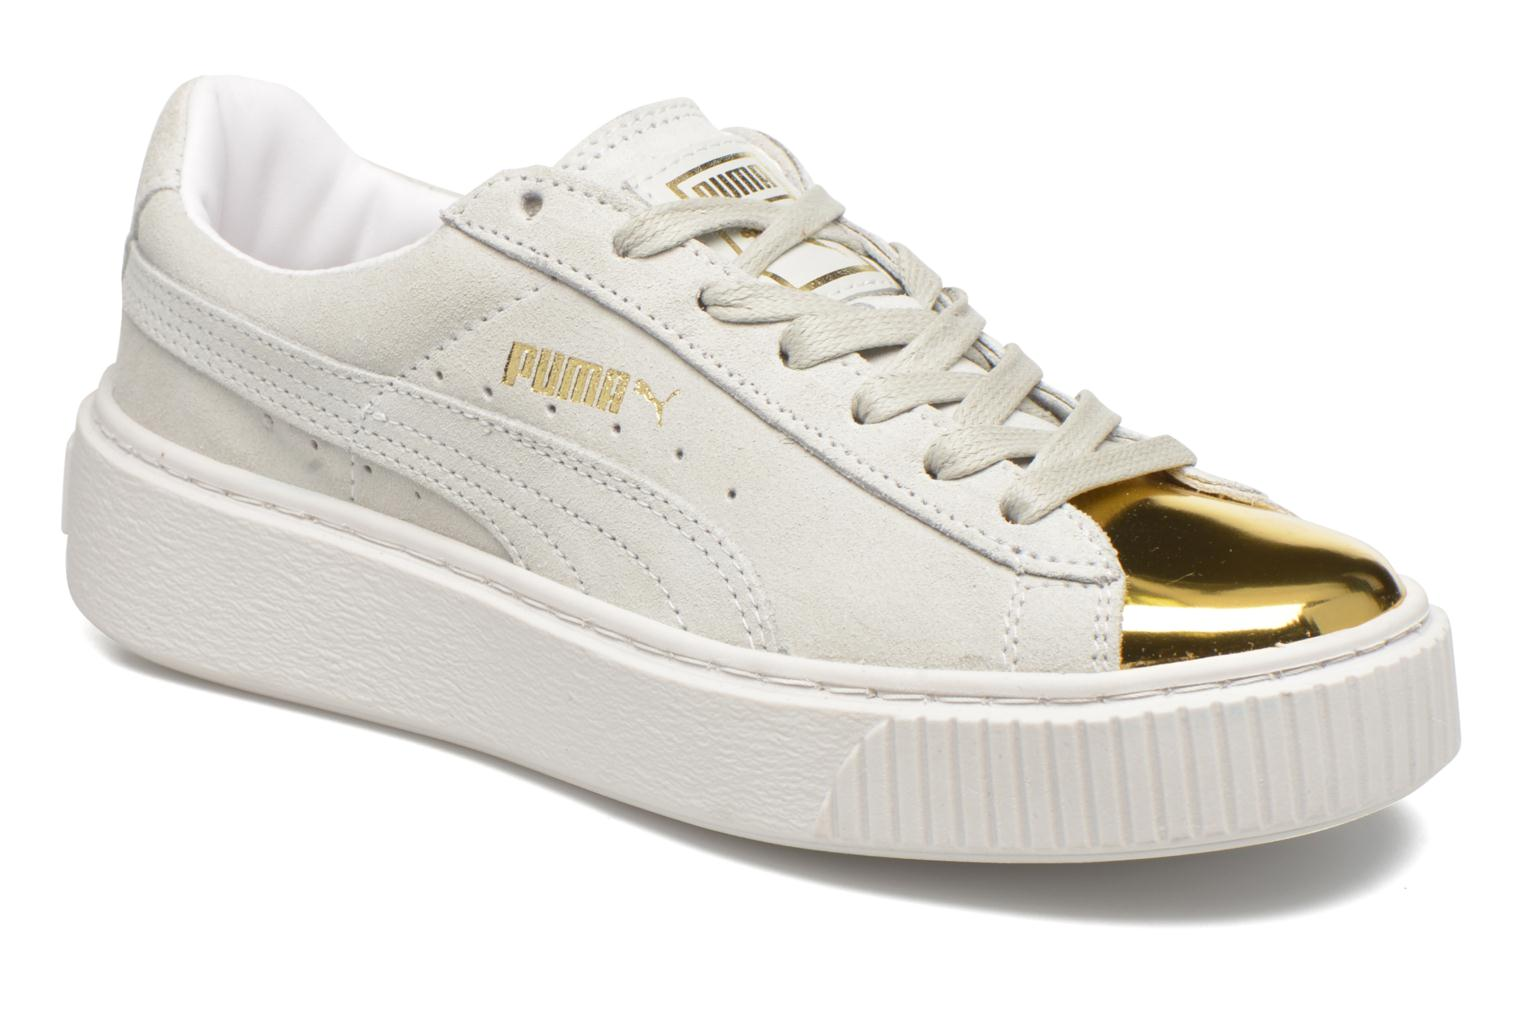 WNS Suede Creepers Gold/White